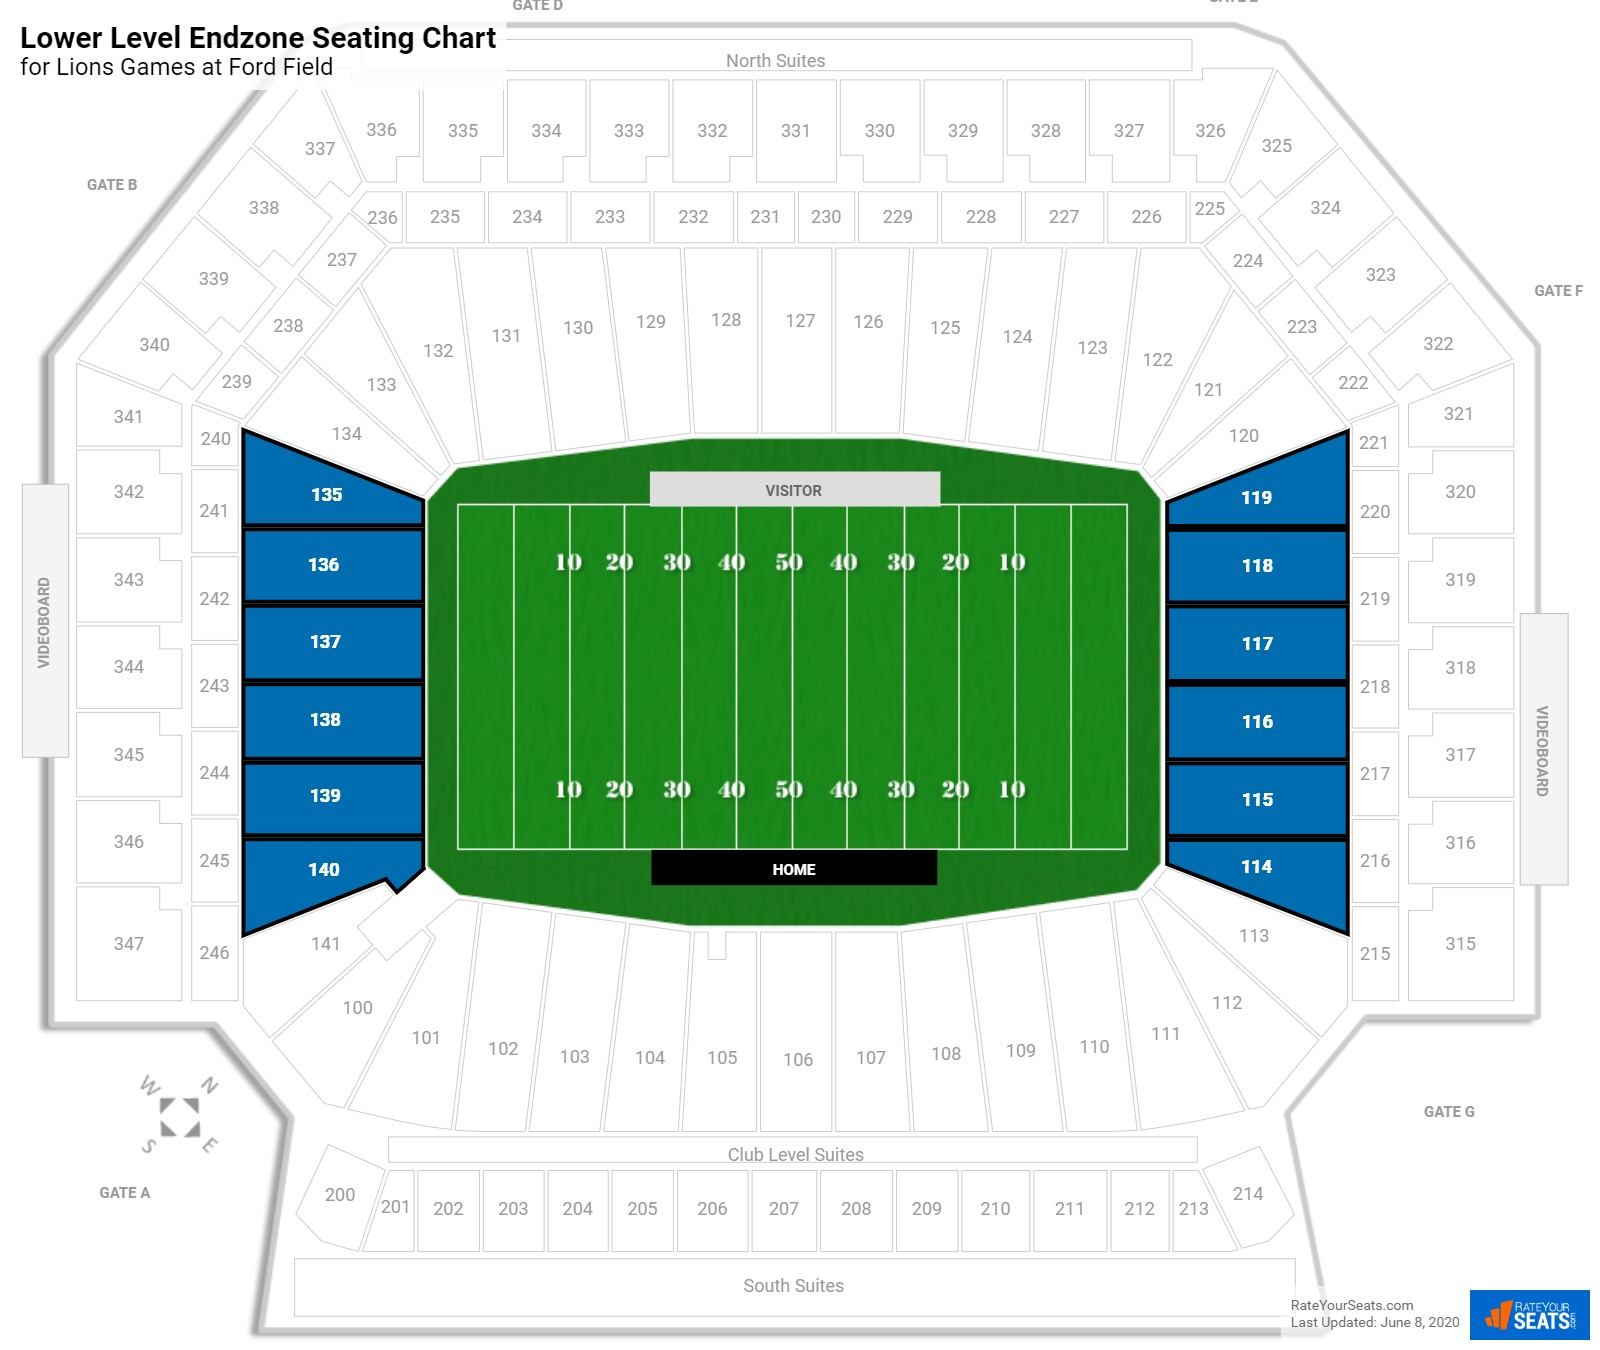 Ford Field Lower Level Endzone seating chart